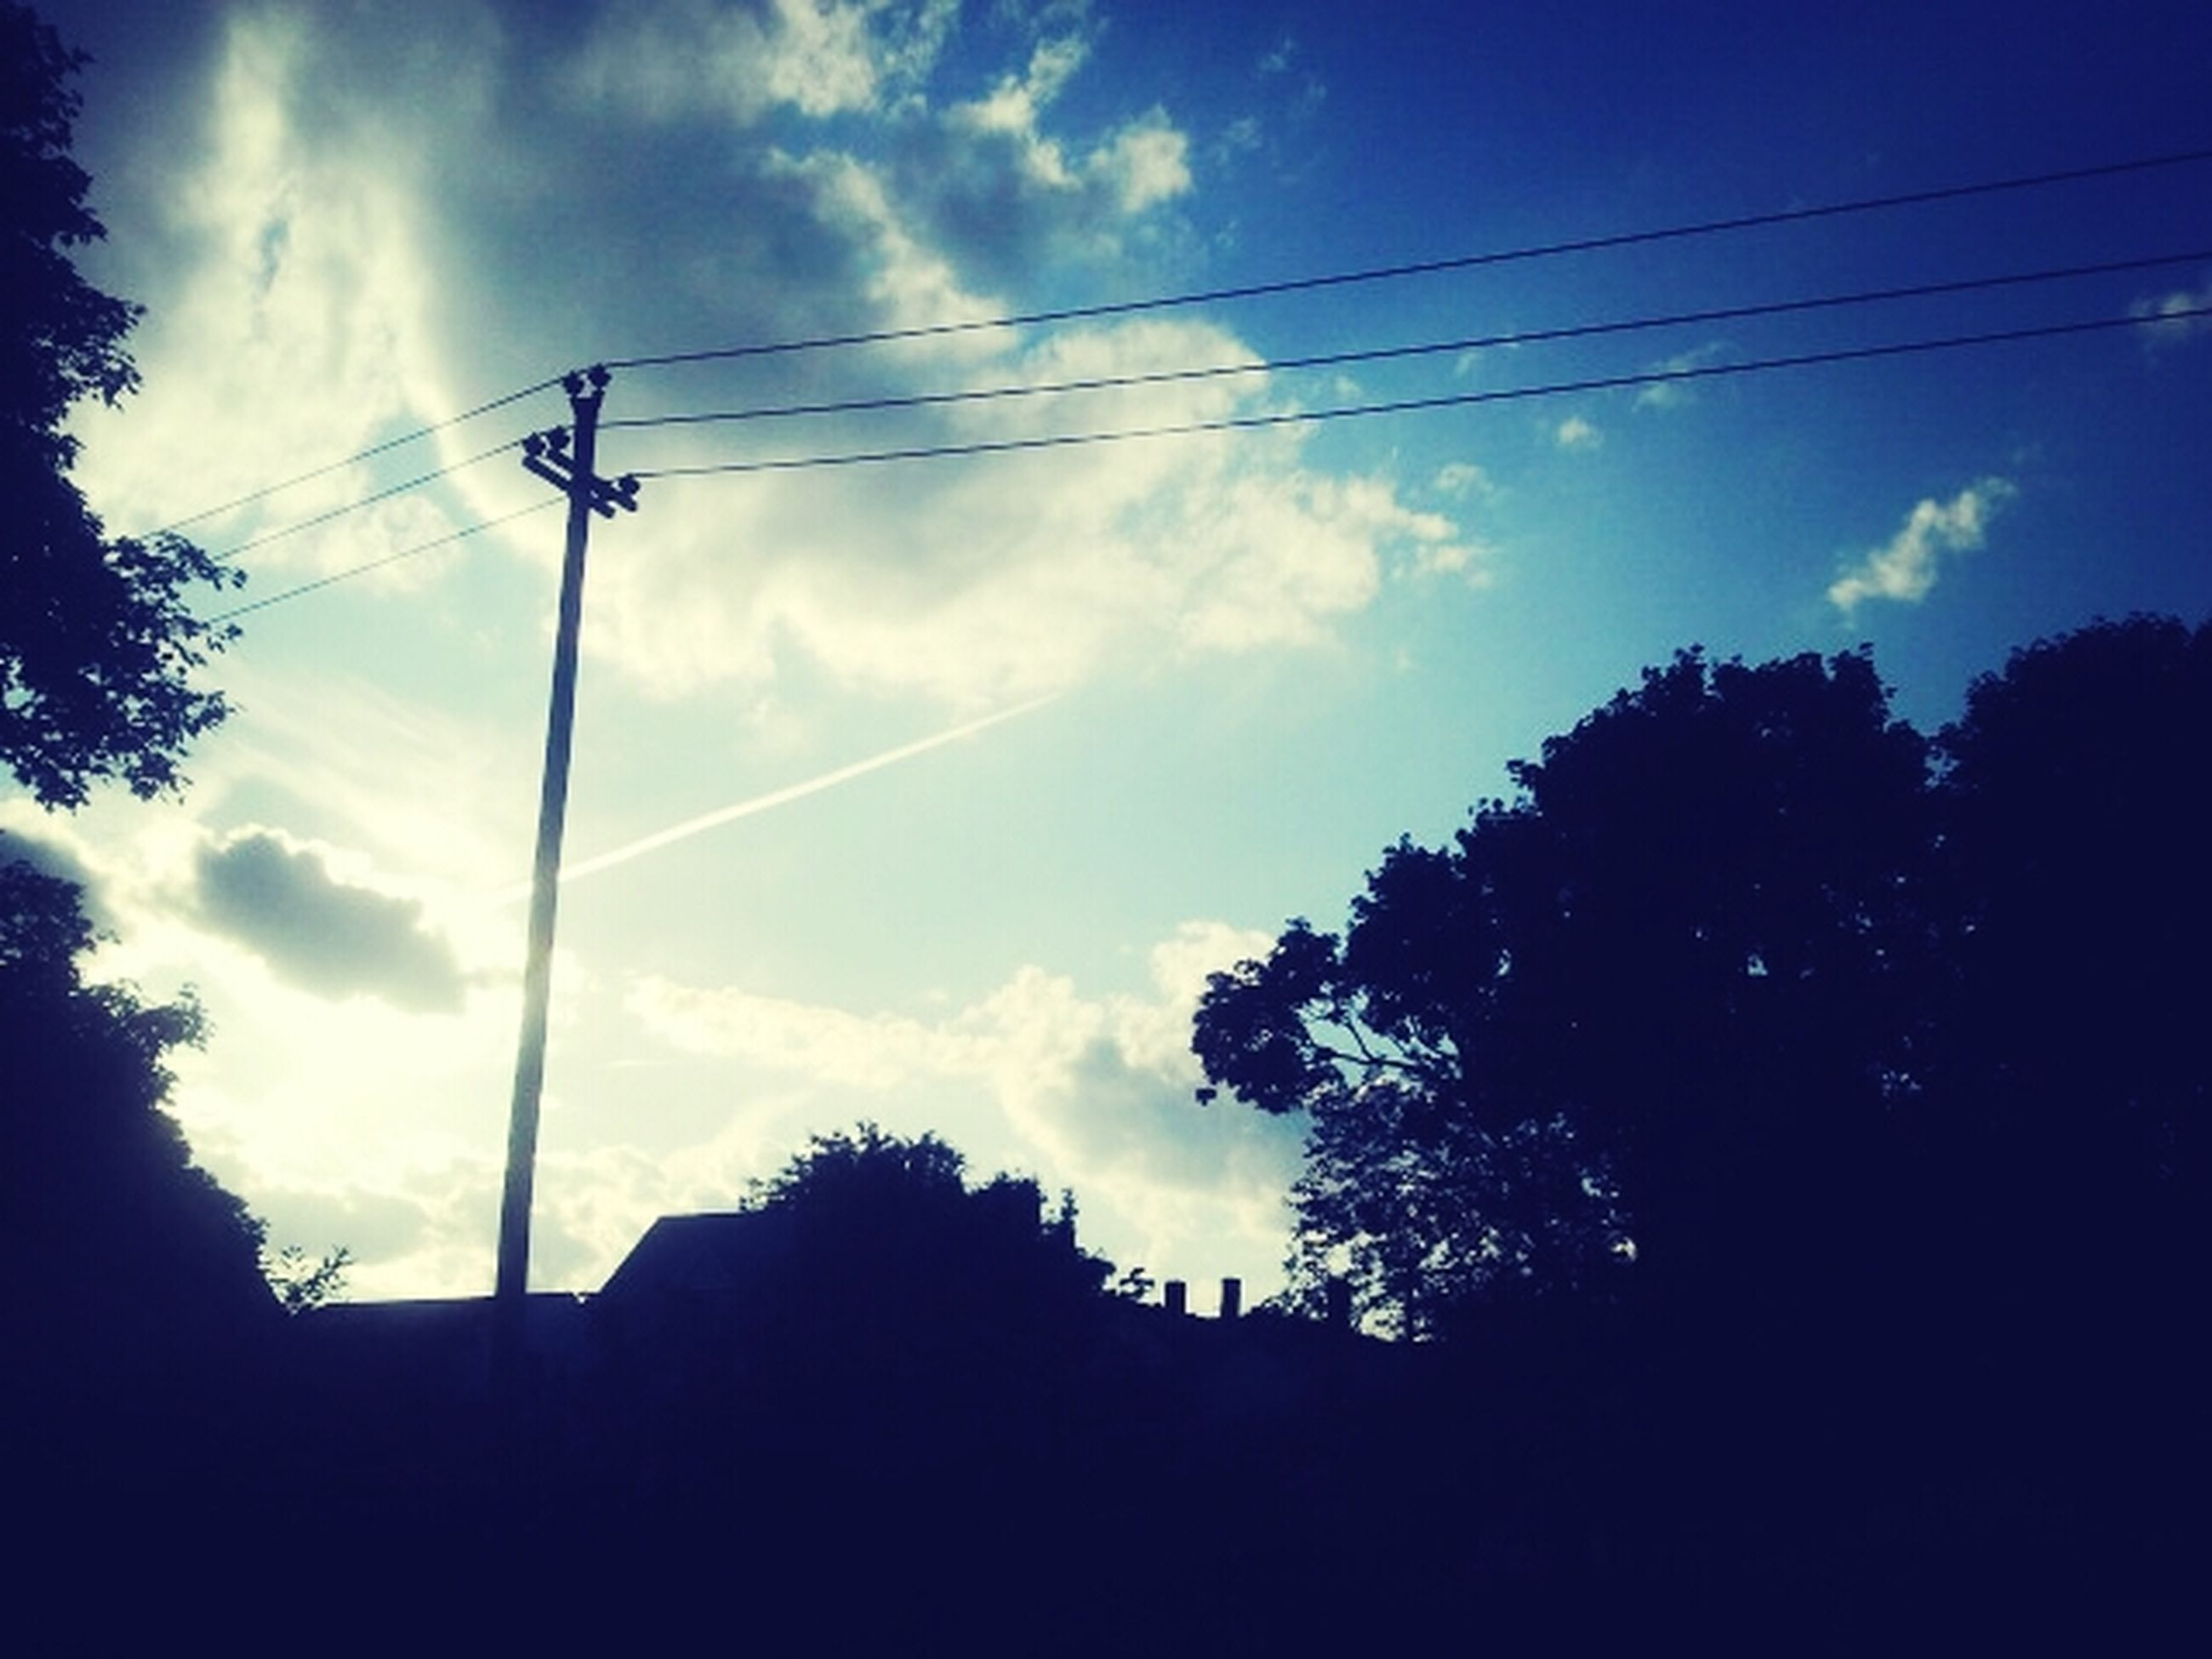 power line, electricity pylon, low angle view, cable, electricity, sky, power supply, silhouette, tree, connection, power cable, cloud - sky, fuel and power generation, cloud, technology, street light, cloudy, nature, dusk, outdoors